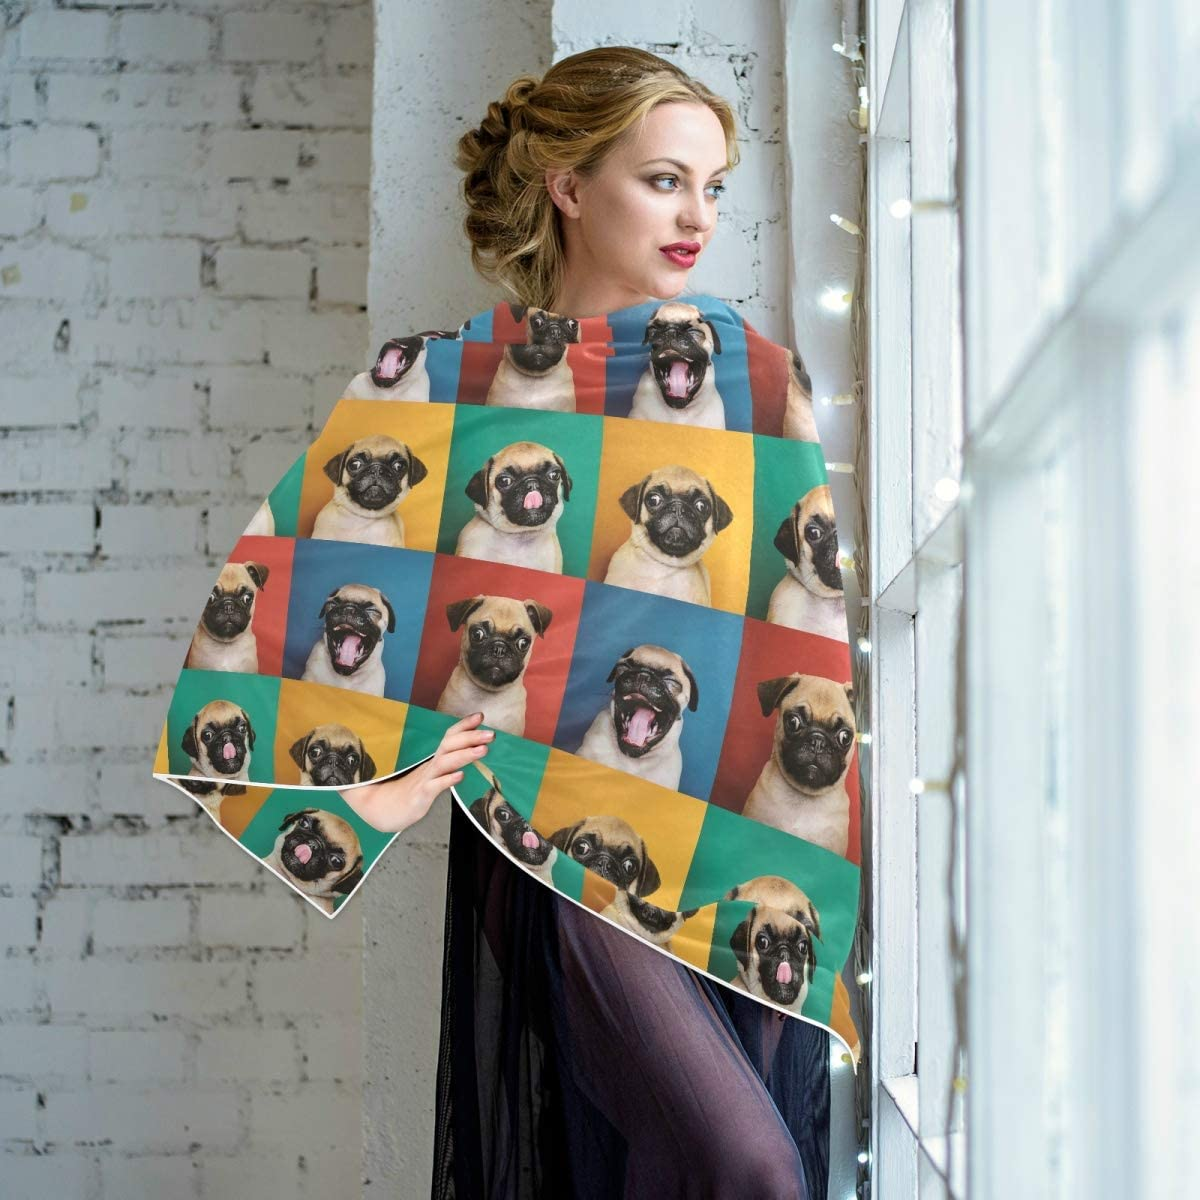 Scarf for Women and Men Cachorro Pug Shawl Wraps Blanket Scarf Warm soft Winter Oversized Scarves Lightweight